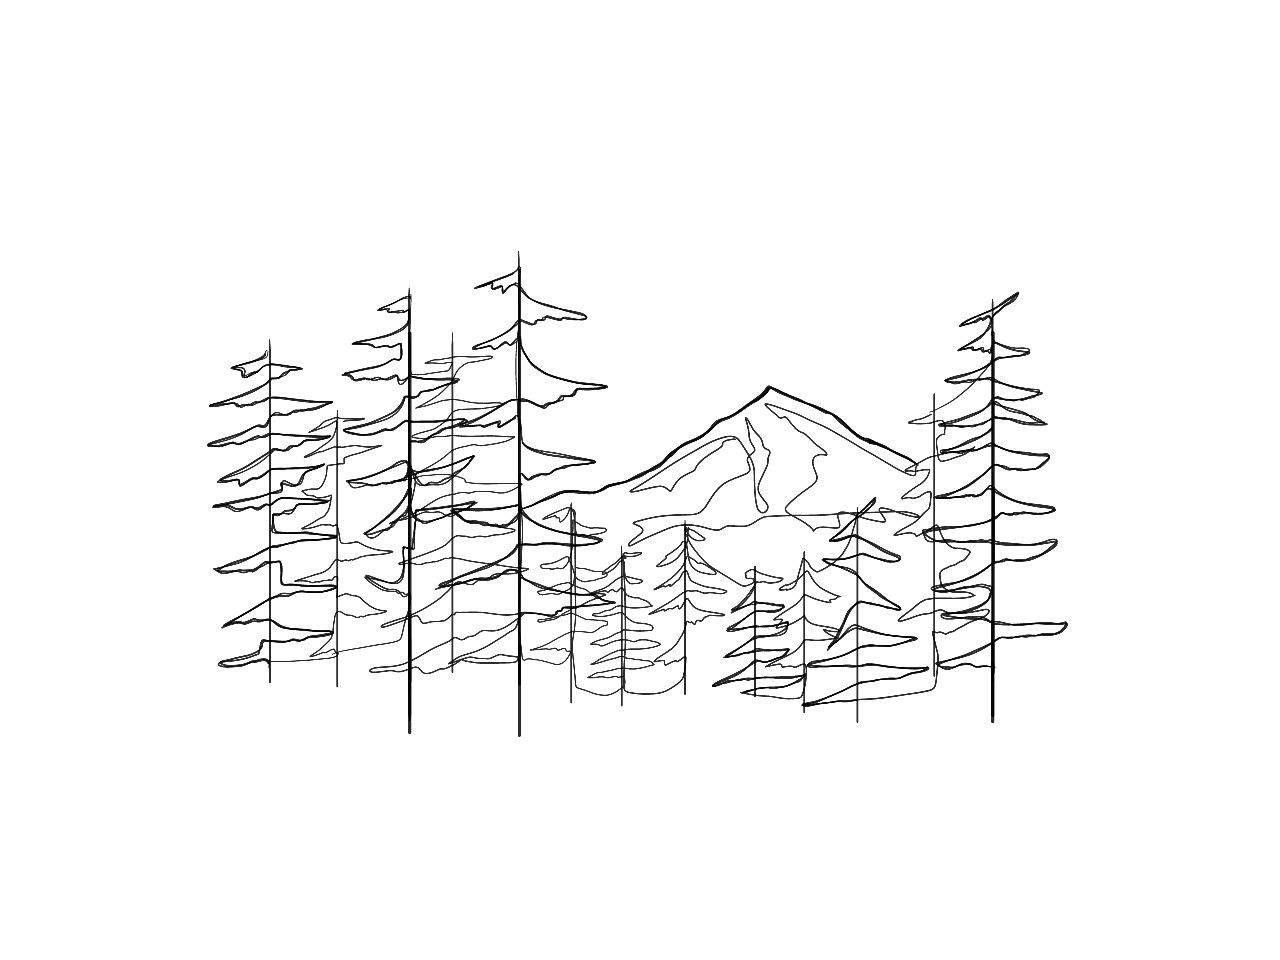 Continuous Line Drawing Of Mt Hood In Portland Or Line Drawing Tattoos Line Drawing Continuous Line Drawing